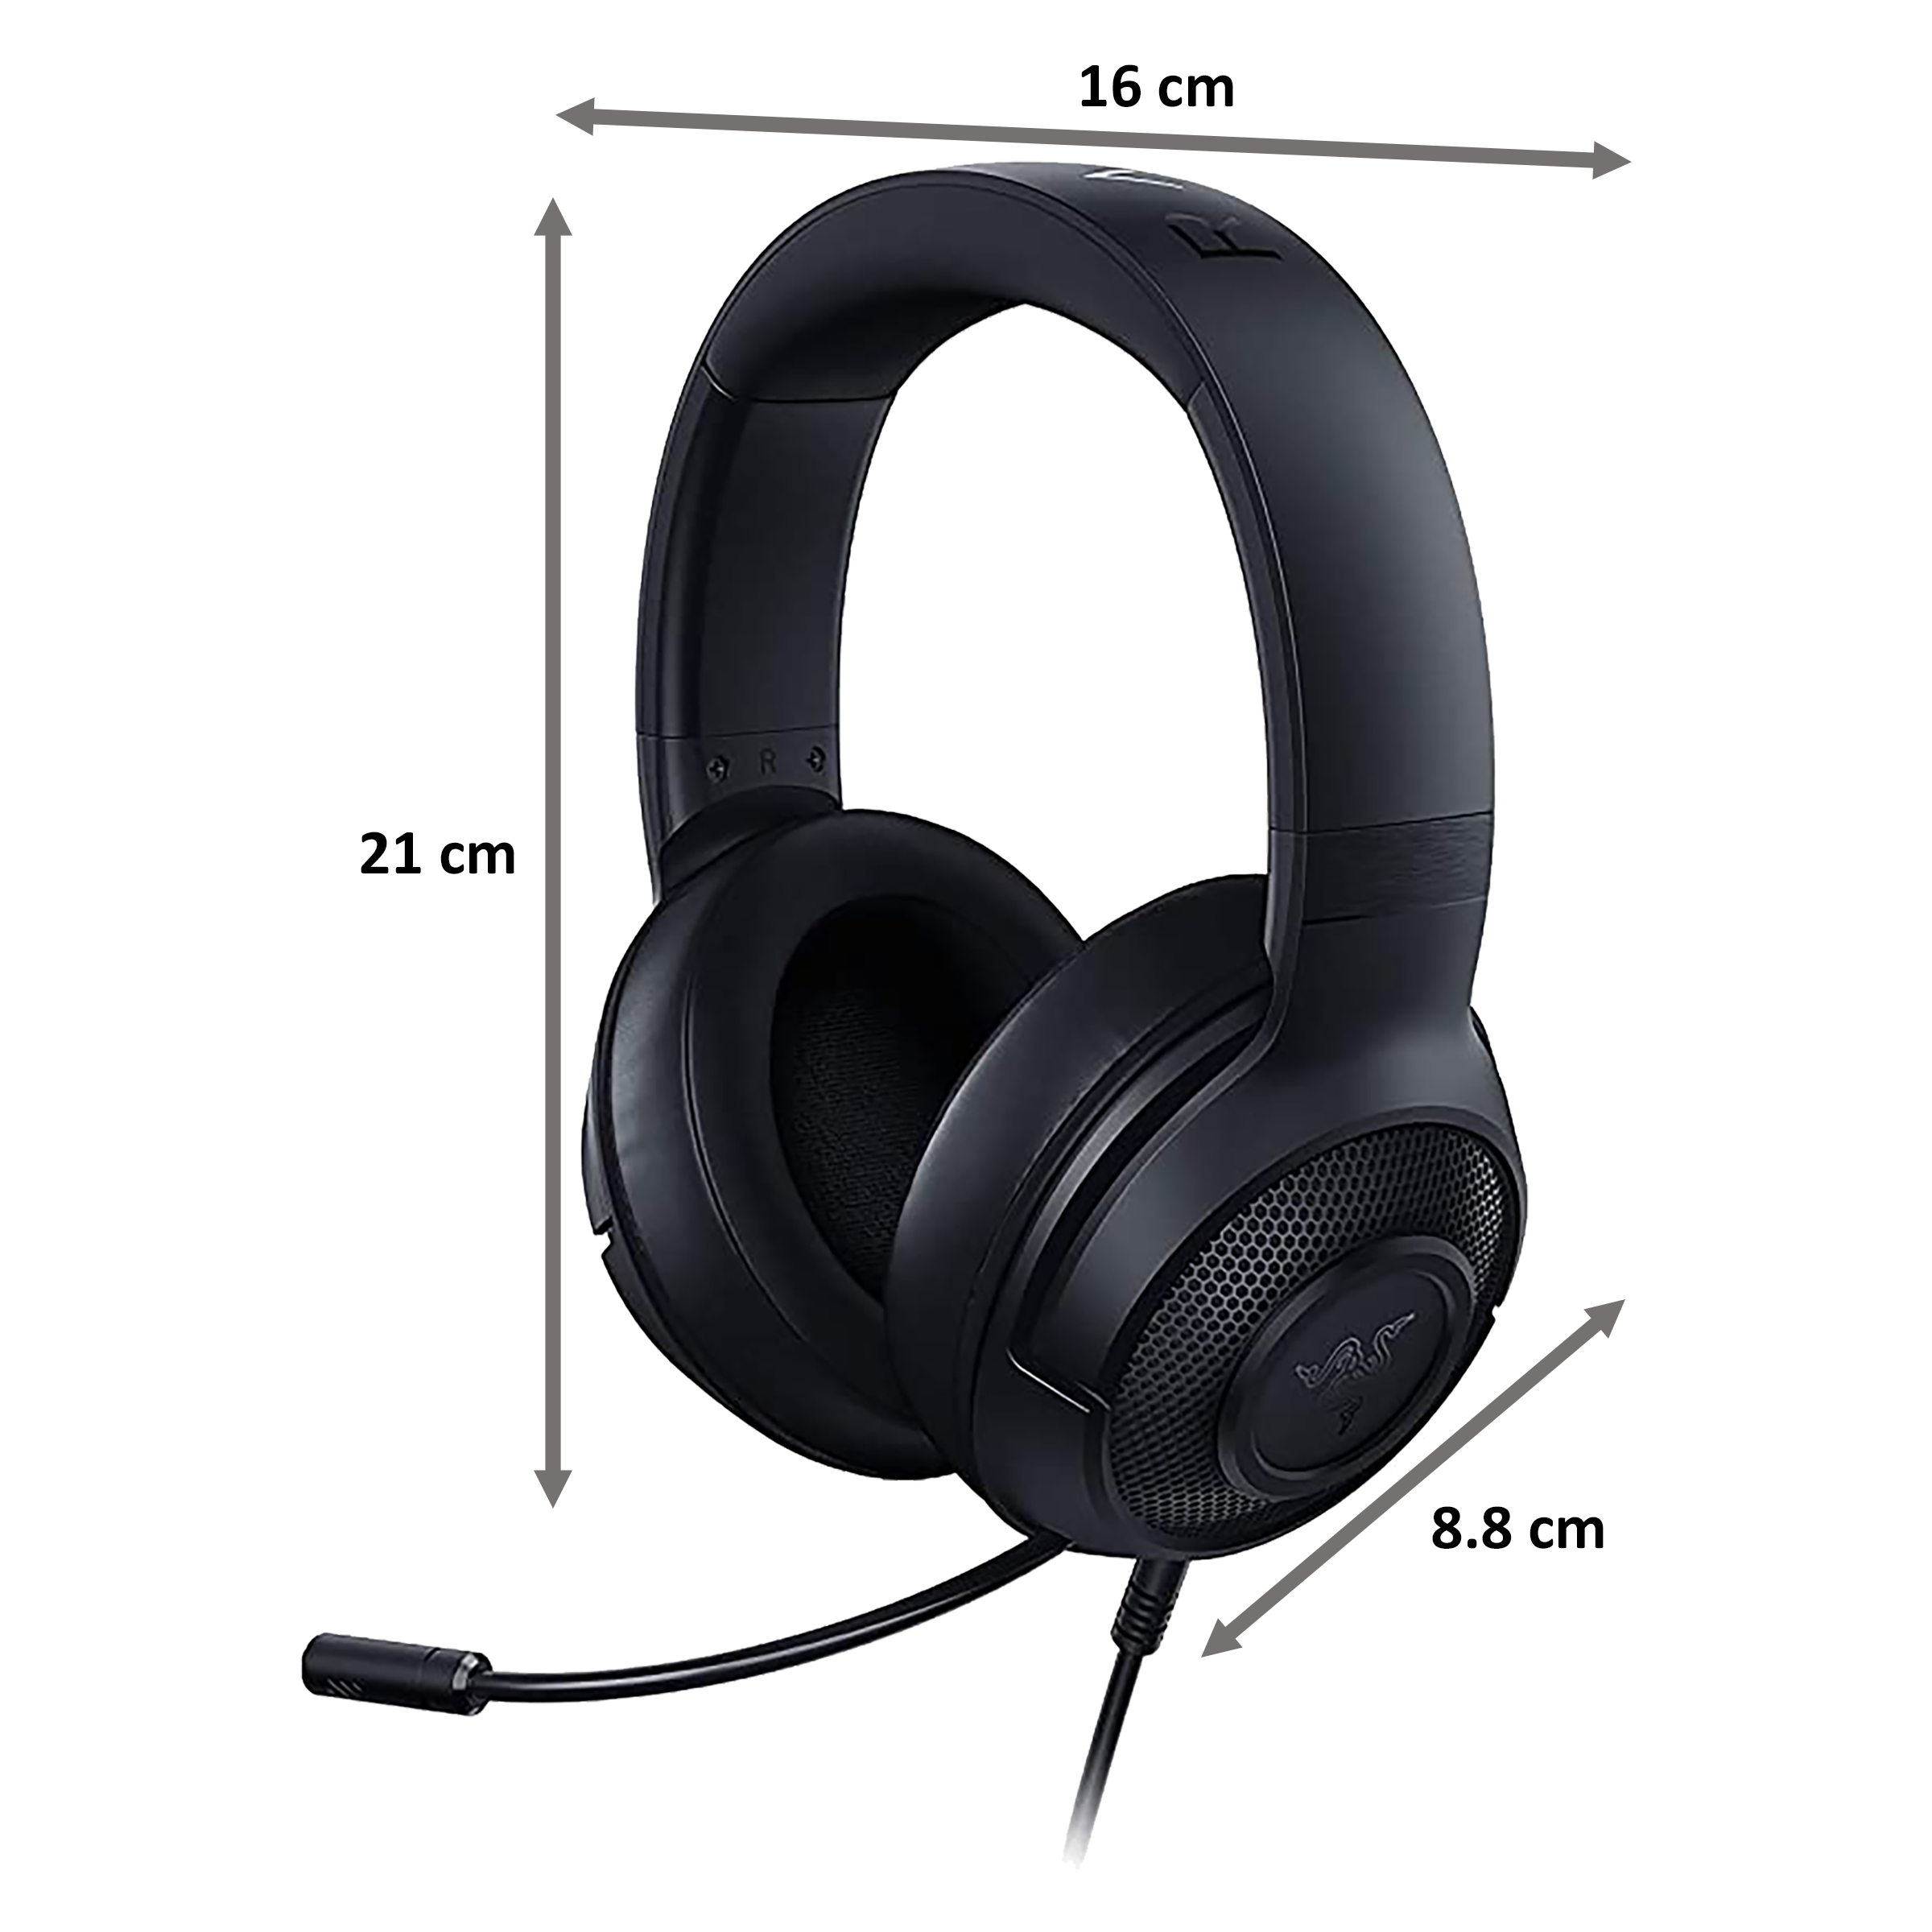 Razer Kraken Over-Ear Wired Gaming Headset with Mic (Clear & Powerful Sound, RZ04-02830100-R3M1, Black)_2